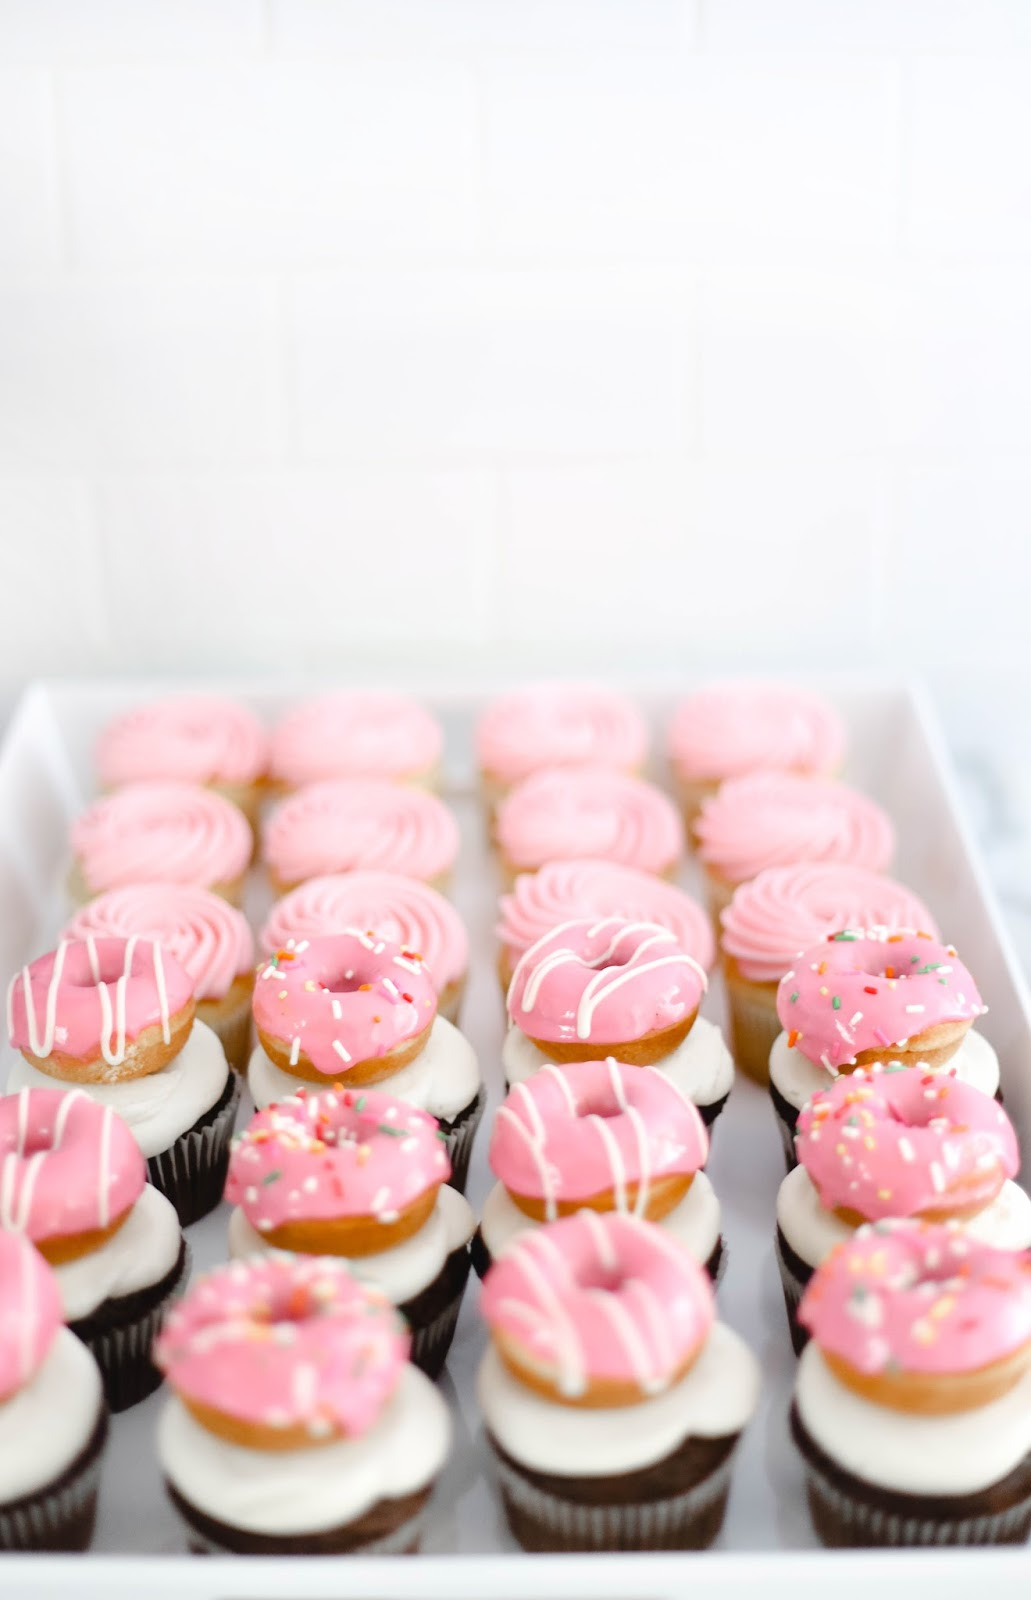 How To Make Mini Cupcakes From A Cake Mix